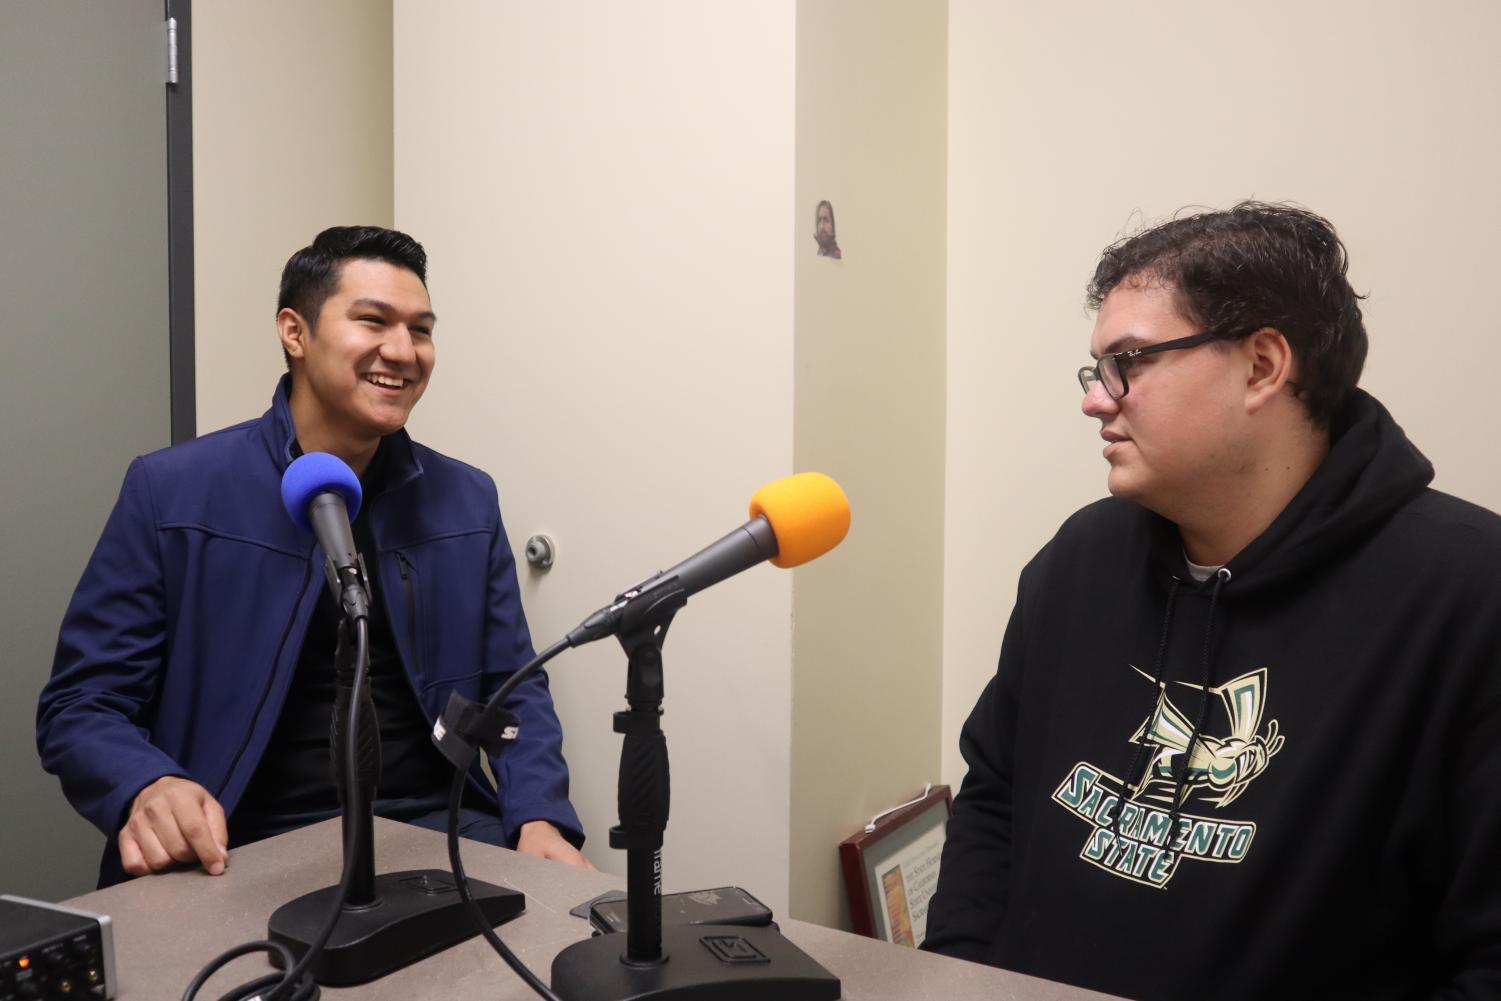 For ASI president and Public Policy & Administration major Noel Mora in the podcast booth with State Hornet Managing Editor Cory Jaynes. Mora recently testified against increasing the CSU's admissions requirements.